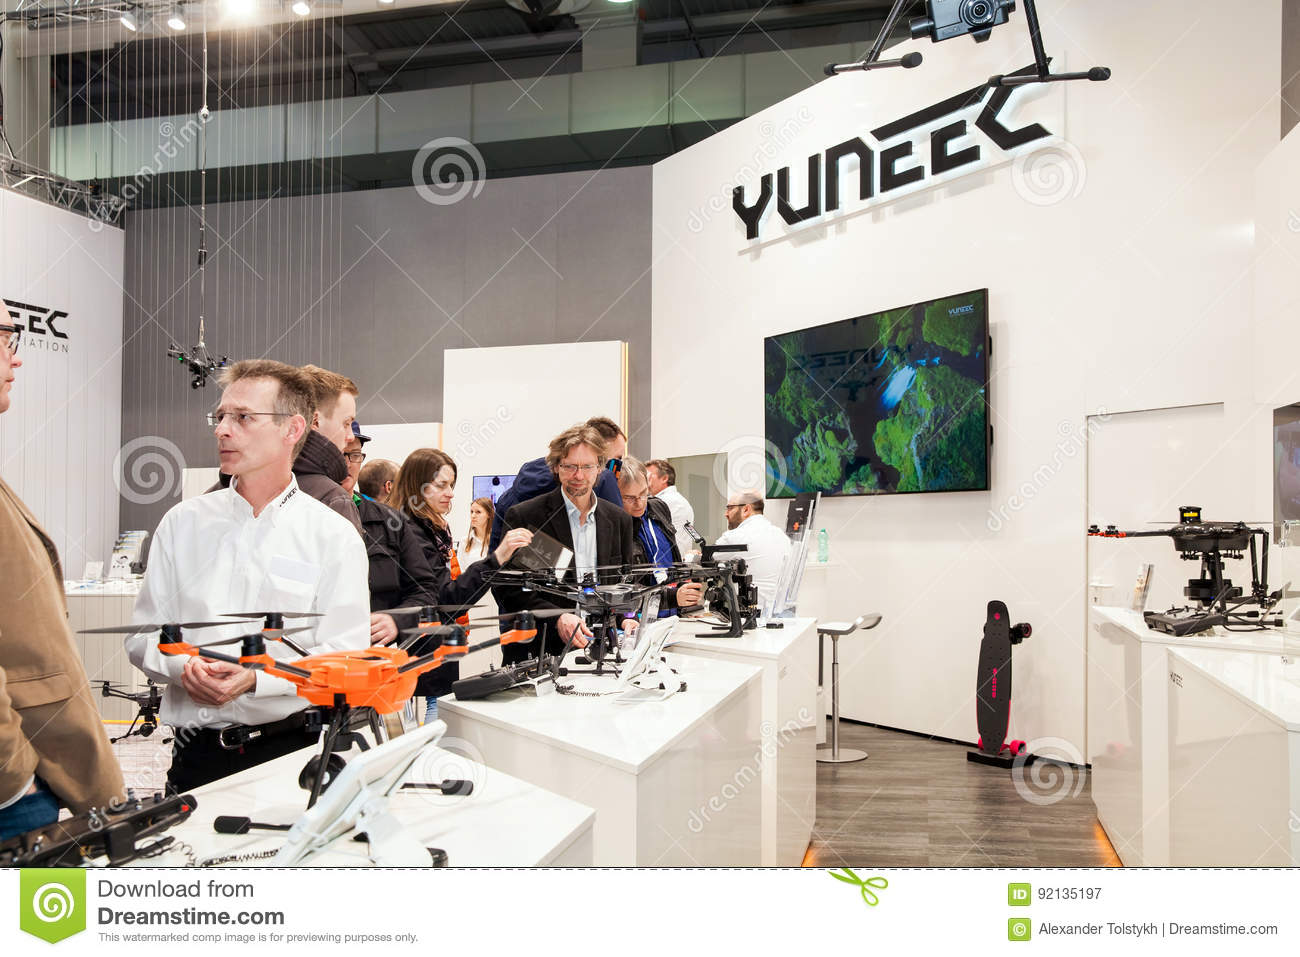 Chinese company Yuneec with drones technoloy on exhibition fair Cebit 2017 in Hannover Messe, Germany